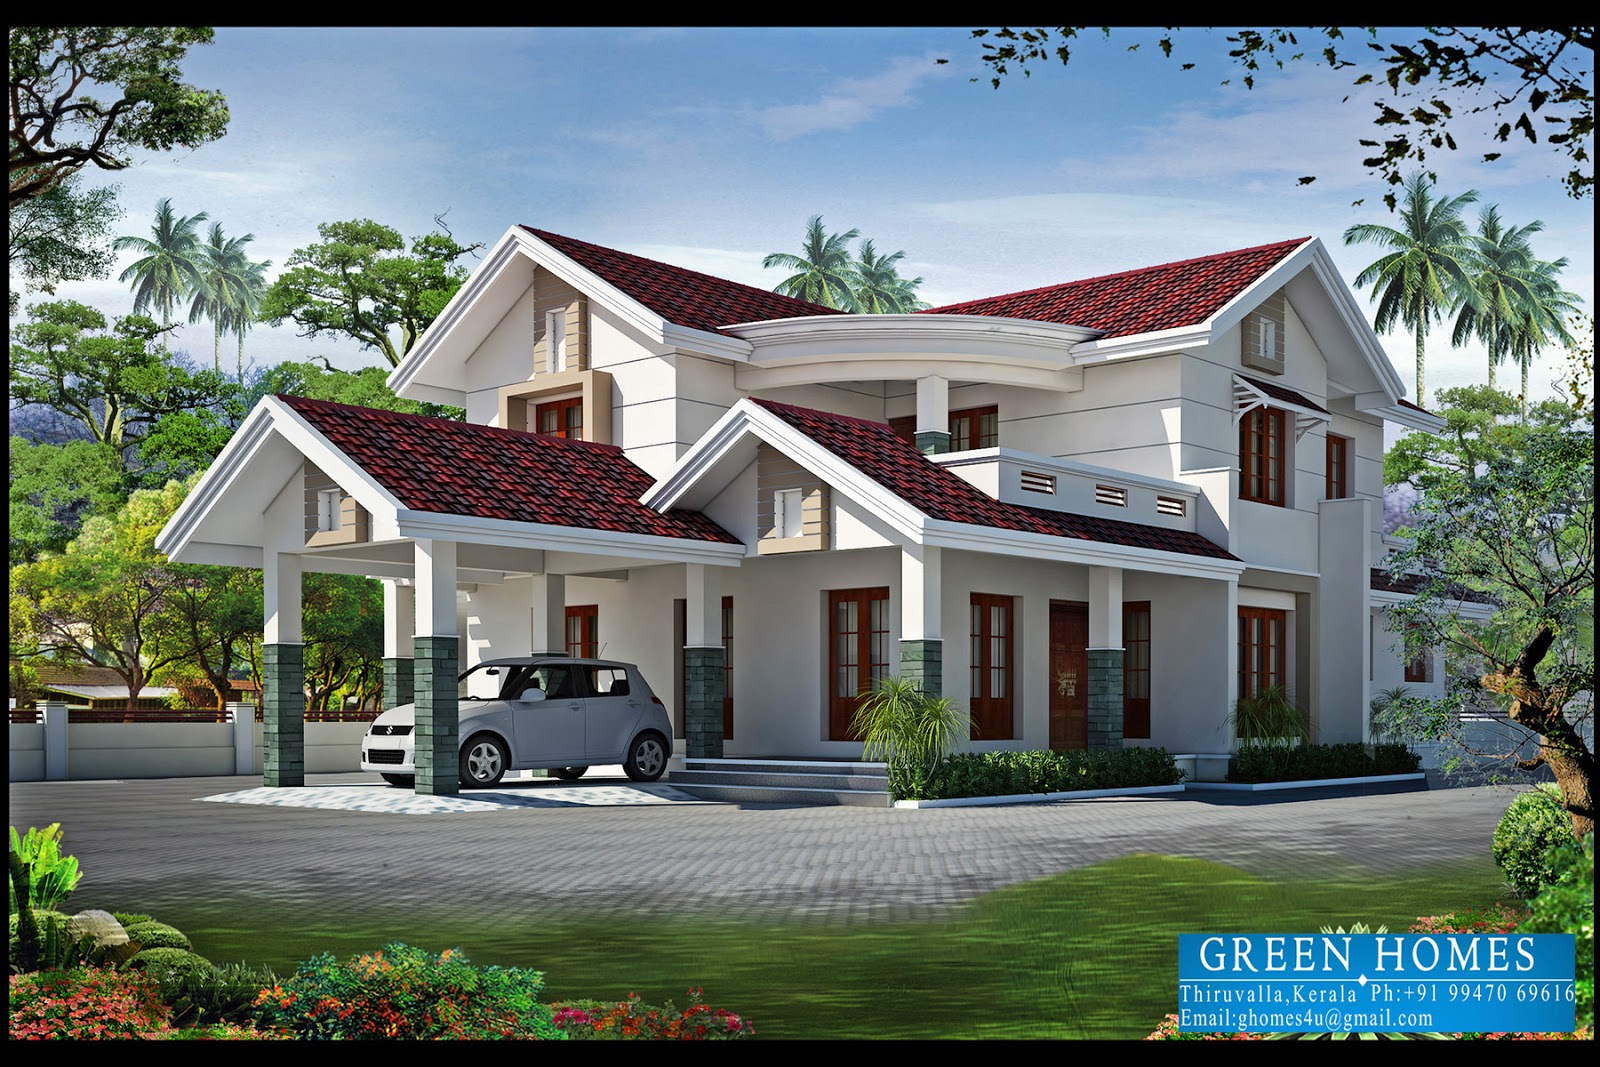 Green homes 4bhk kerala home design 2550 for New home blueprints photos